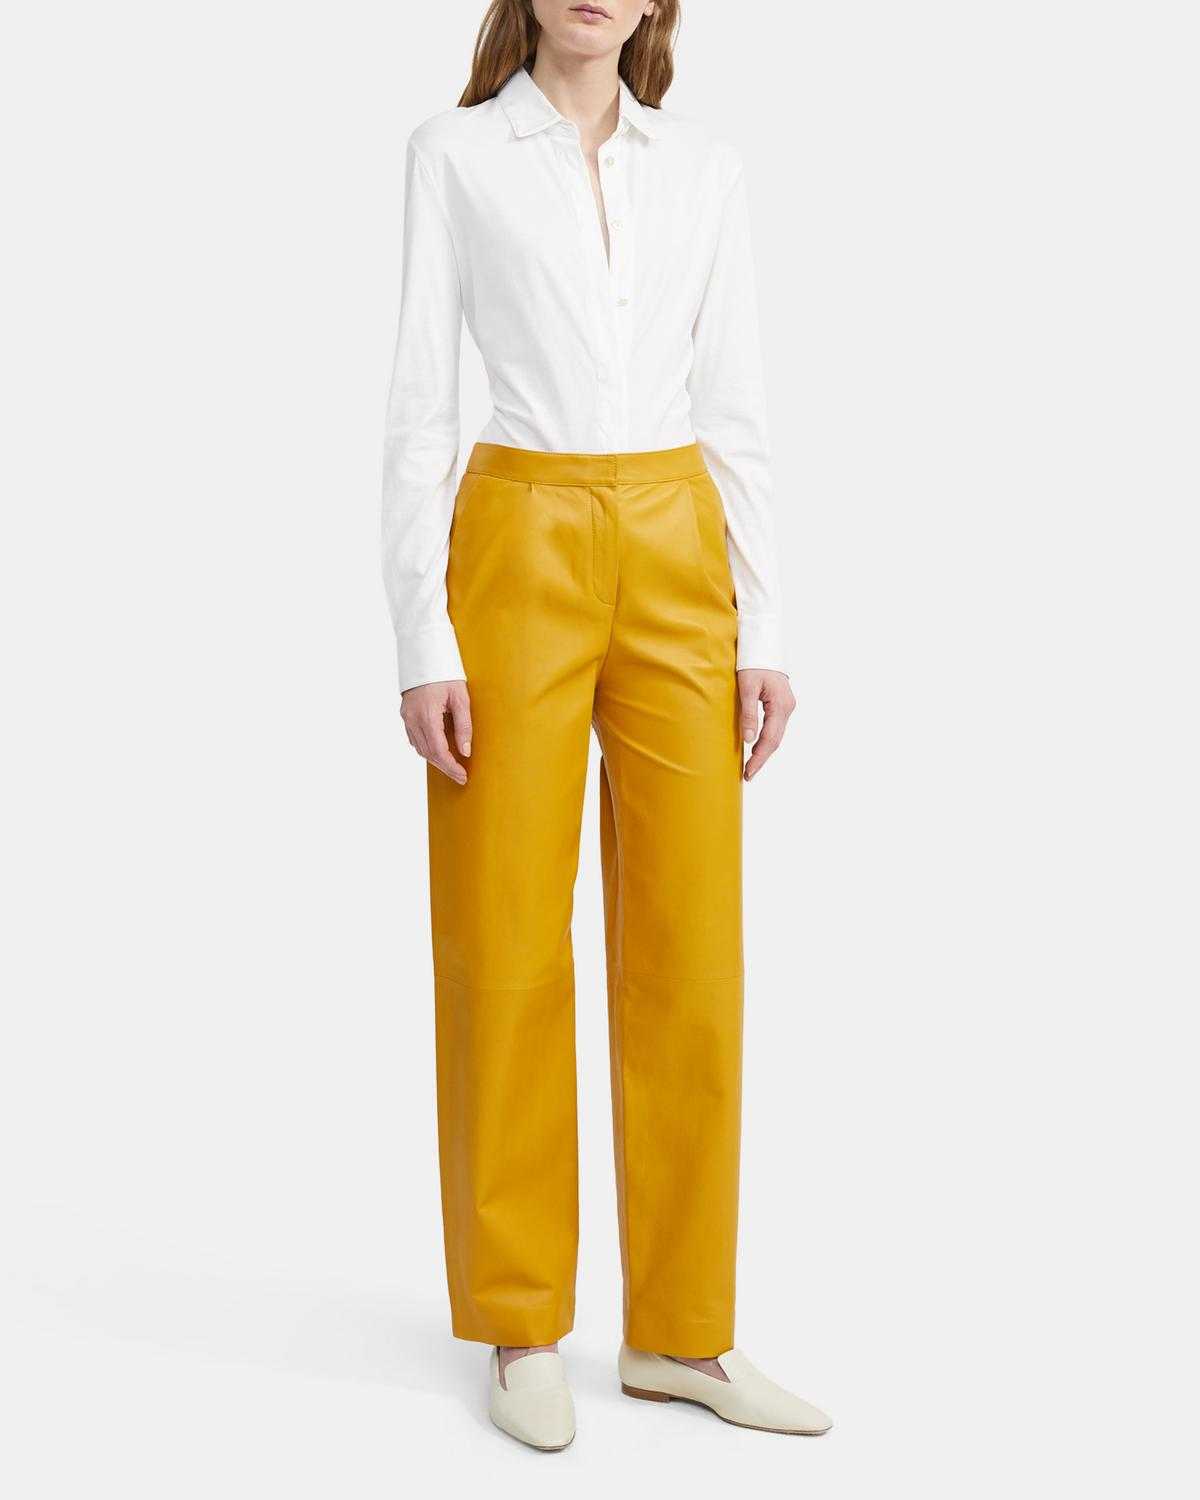 Feather Nappa Leather Pleated Pant